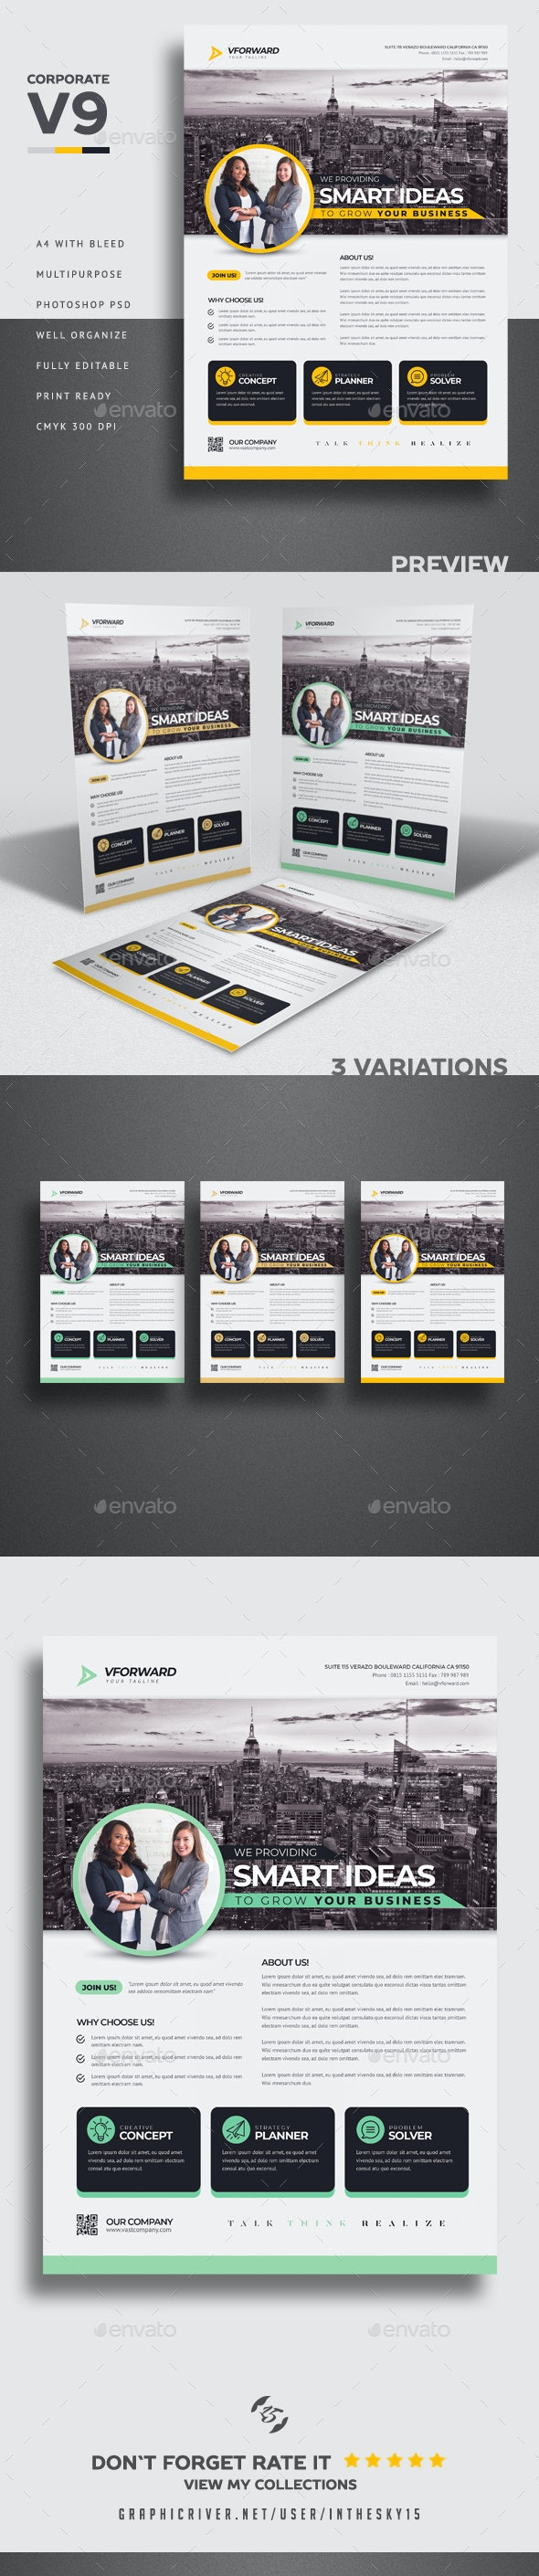 Corporate V9 Flyer - Corporate Flyers